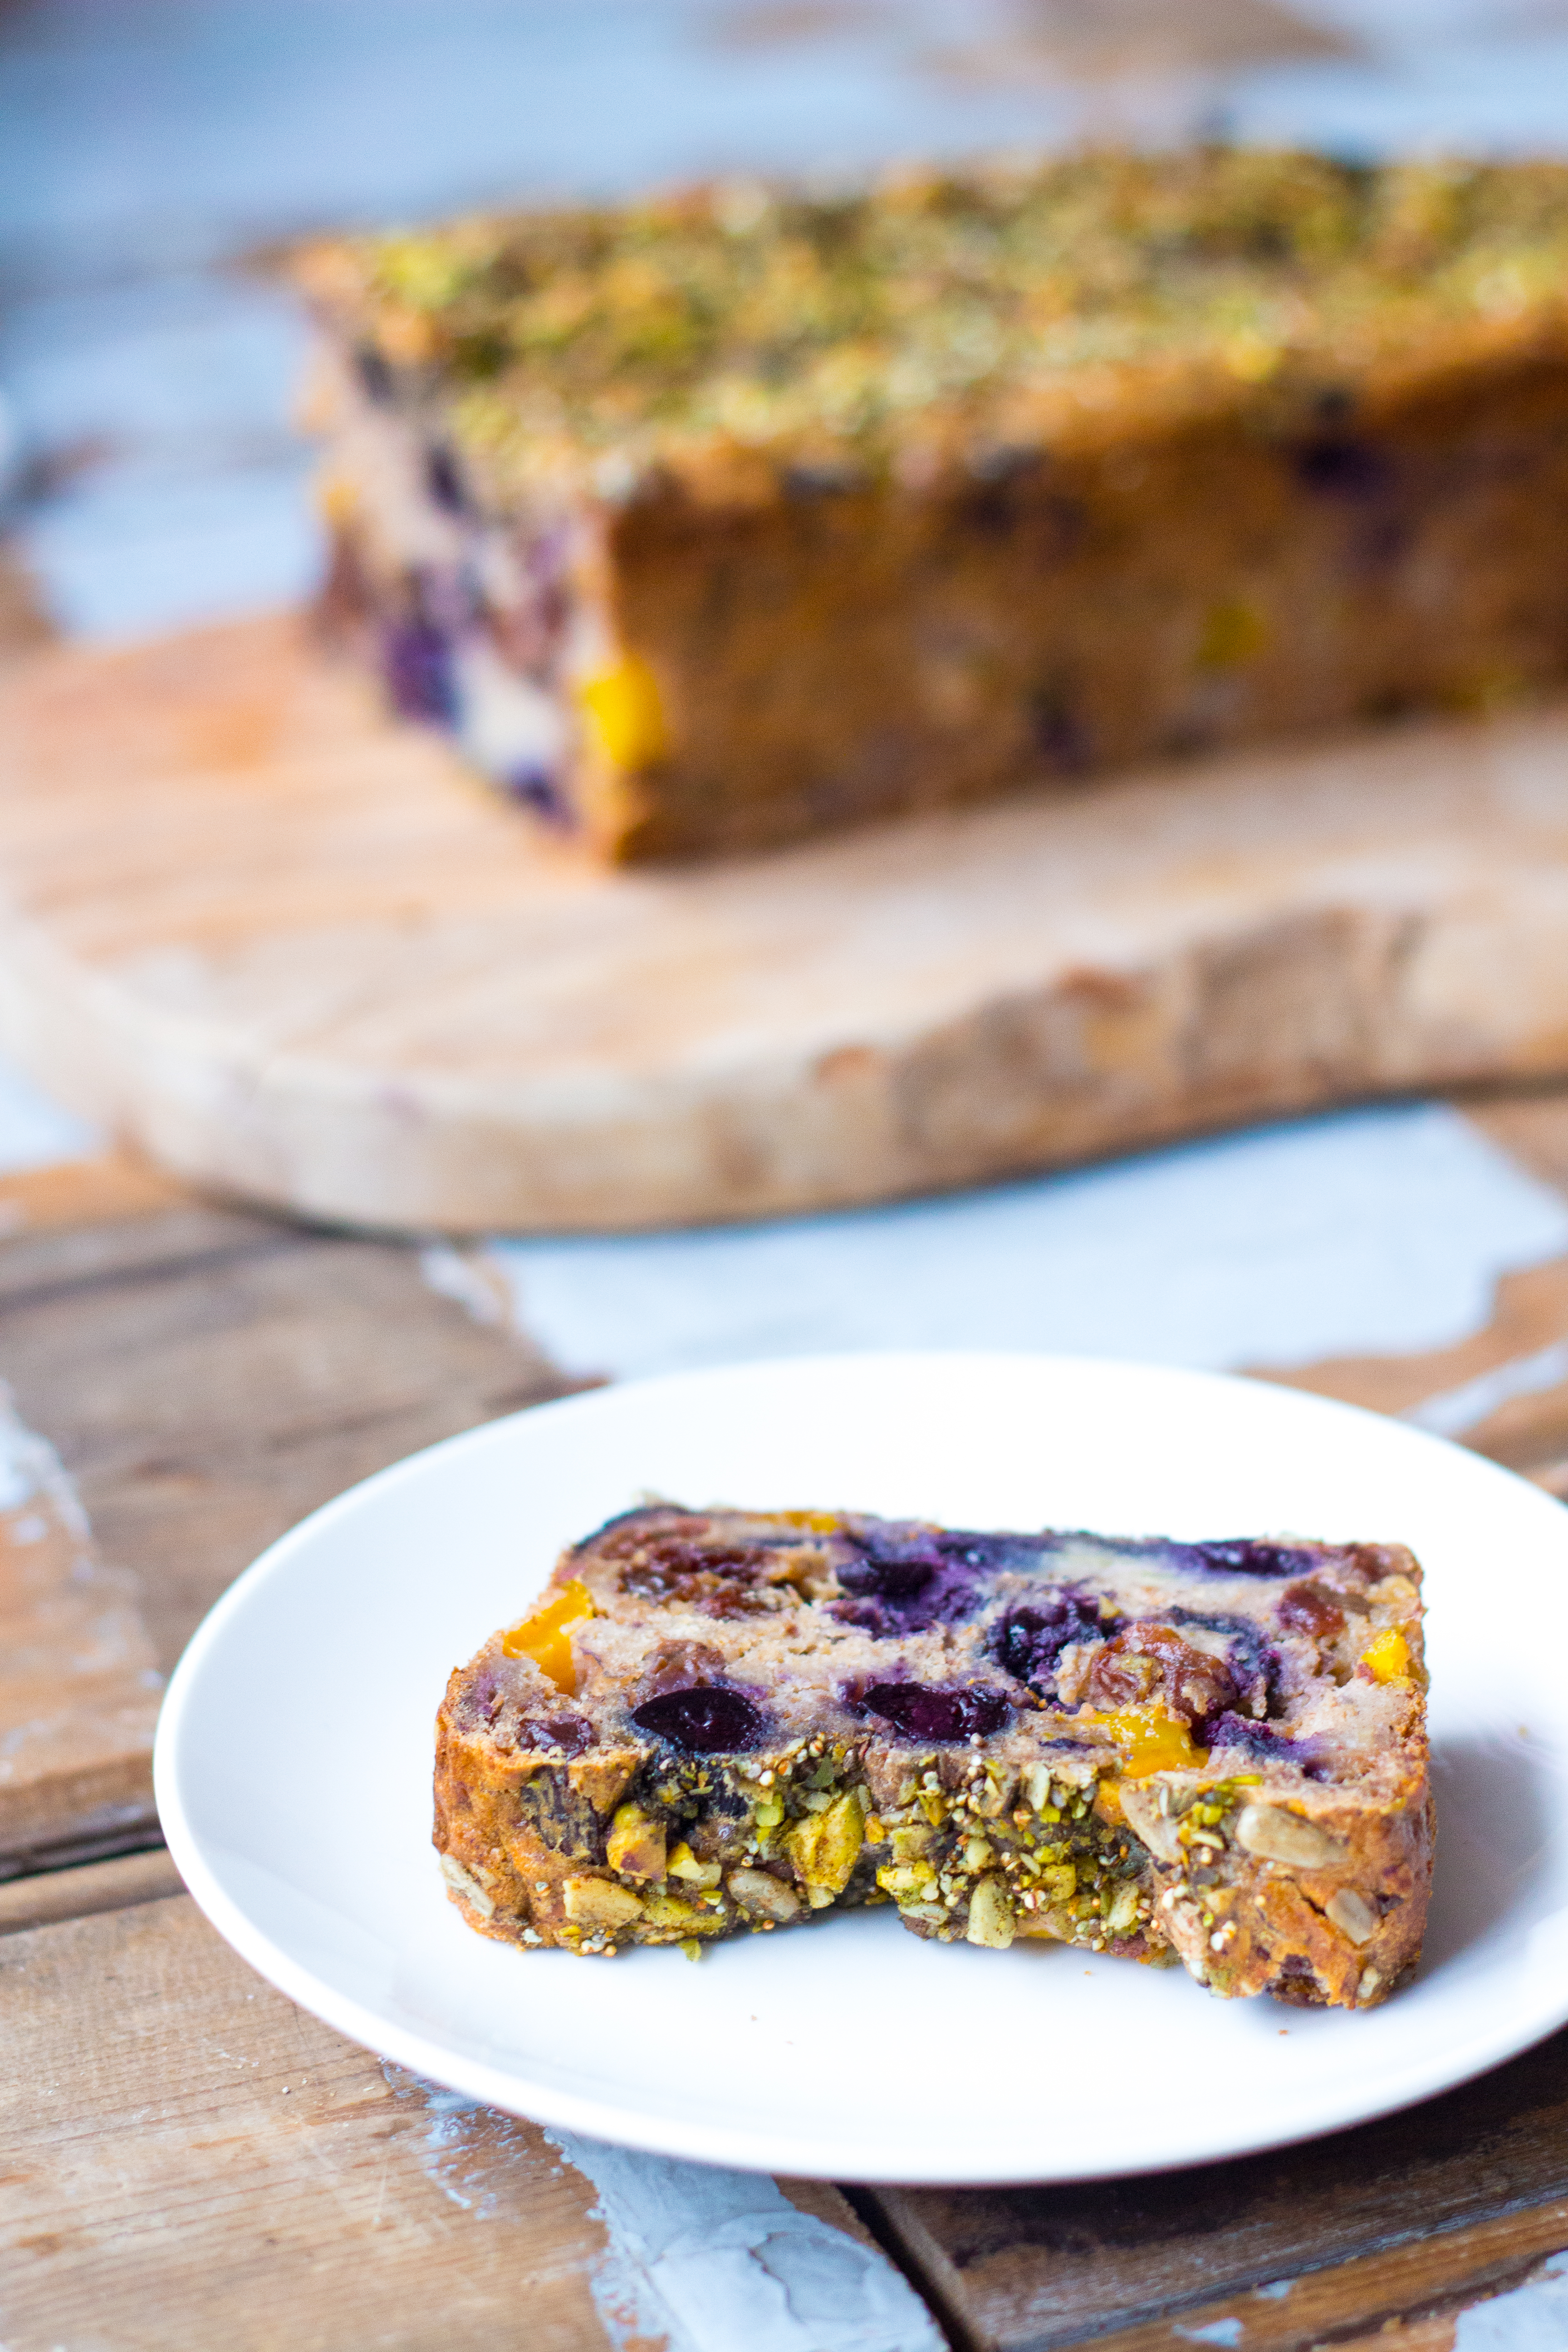 Banana Bread with Mango, Blueberries and a Pistachio Crust // by Rosalie Ruardy